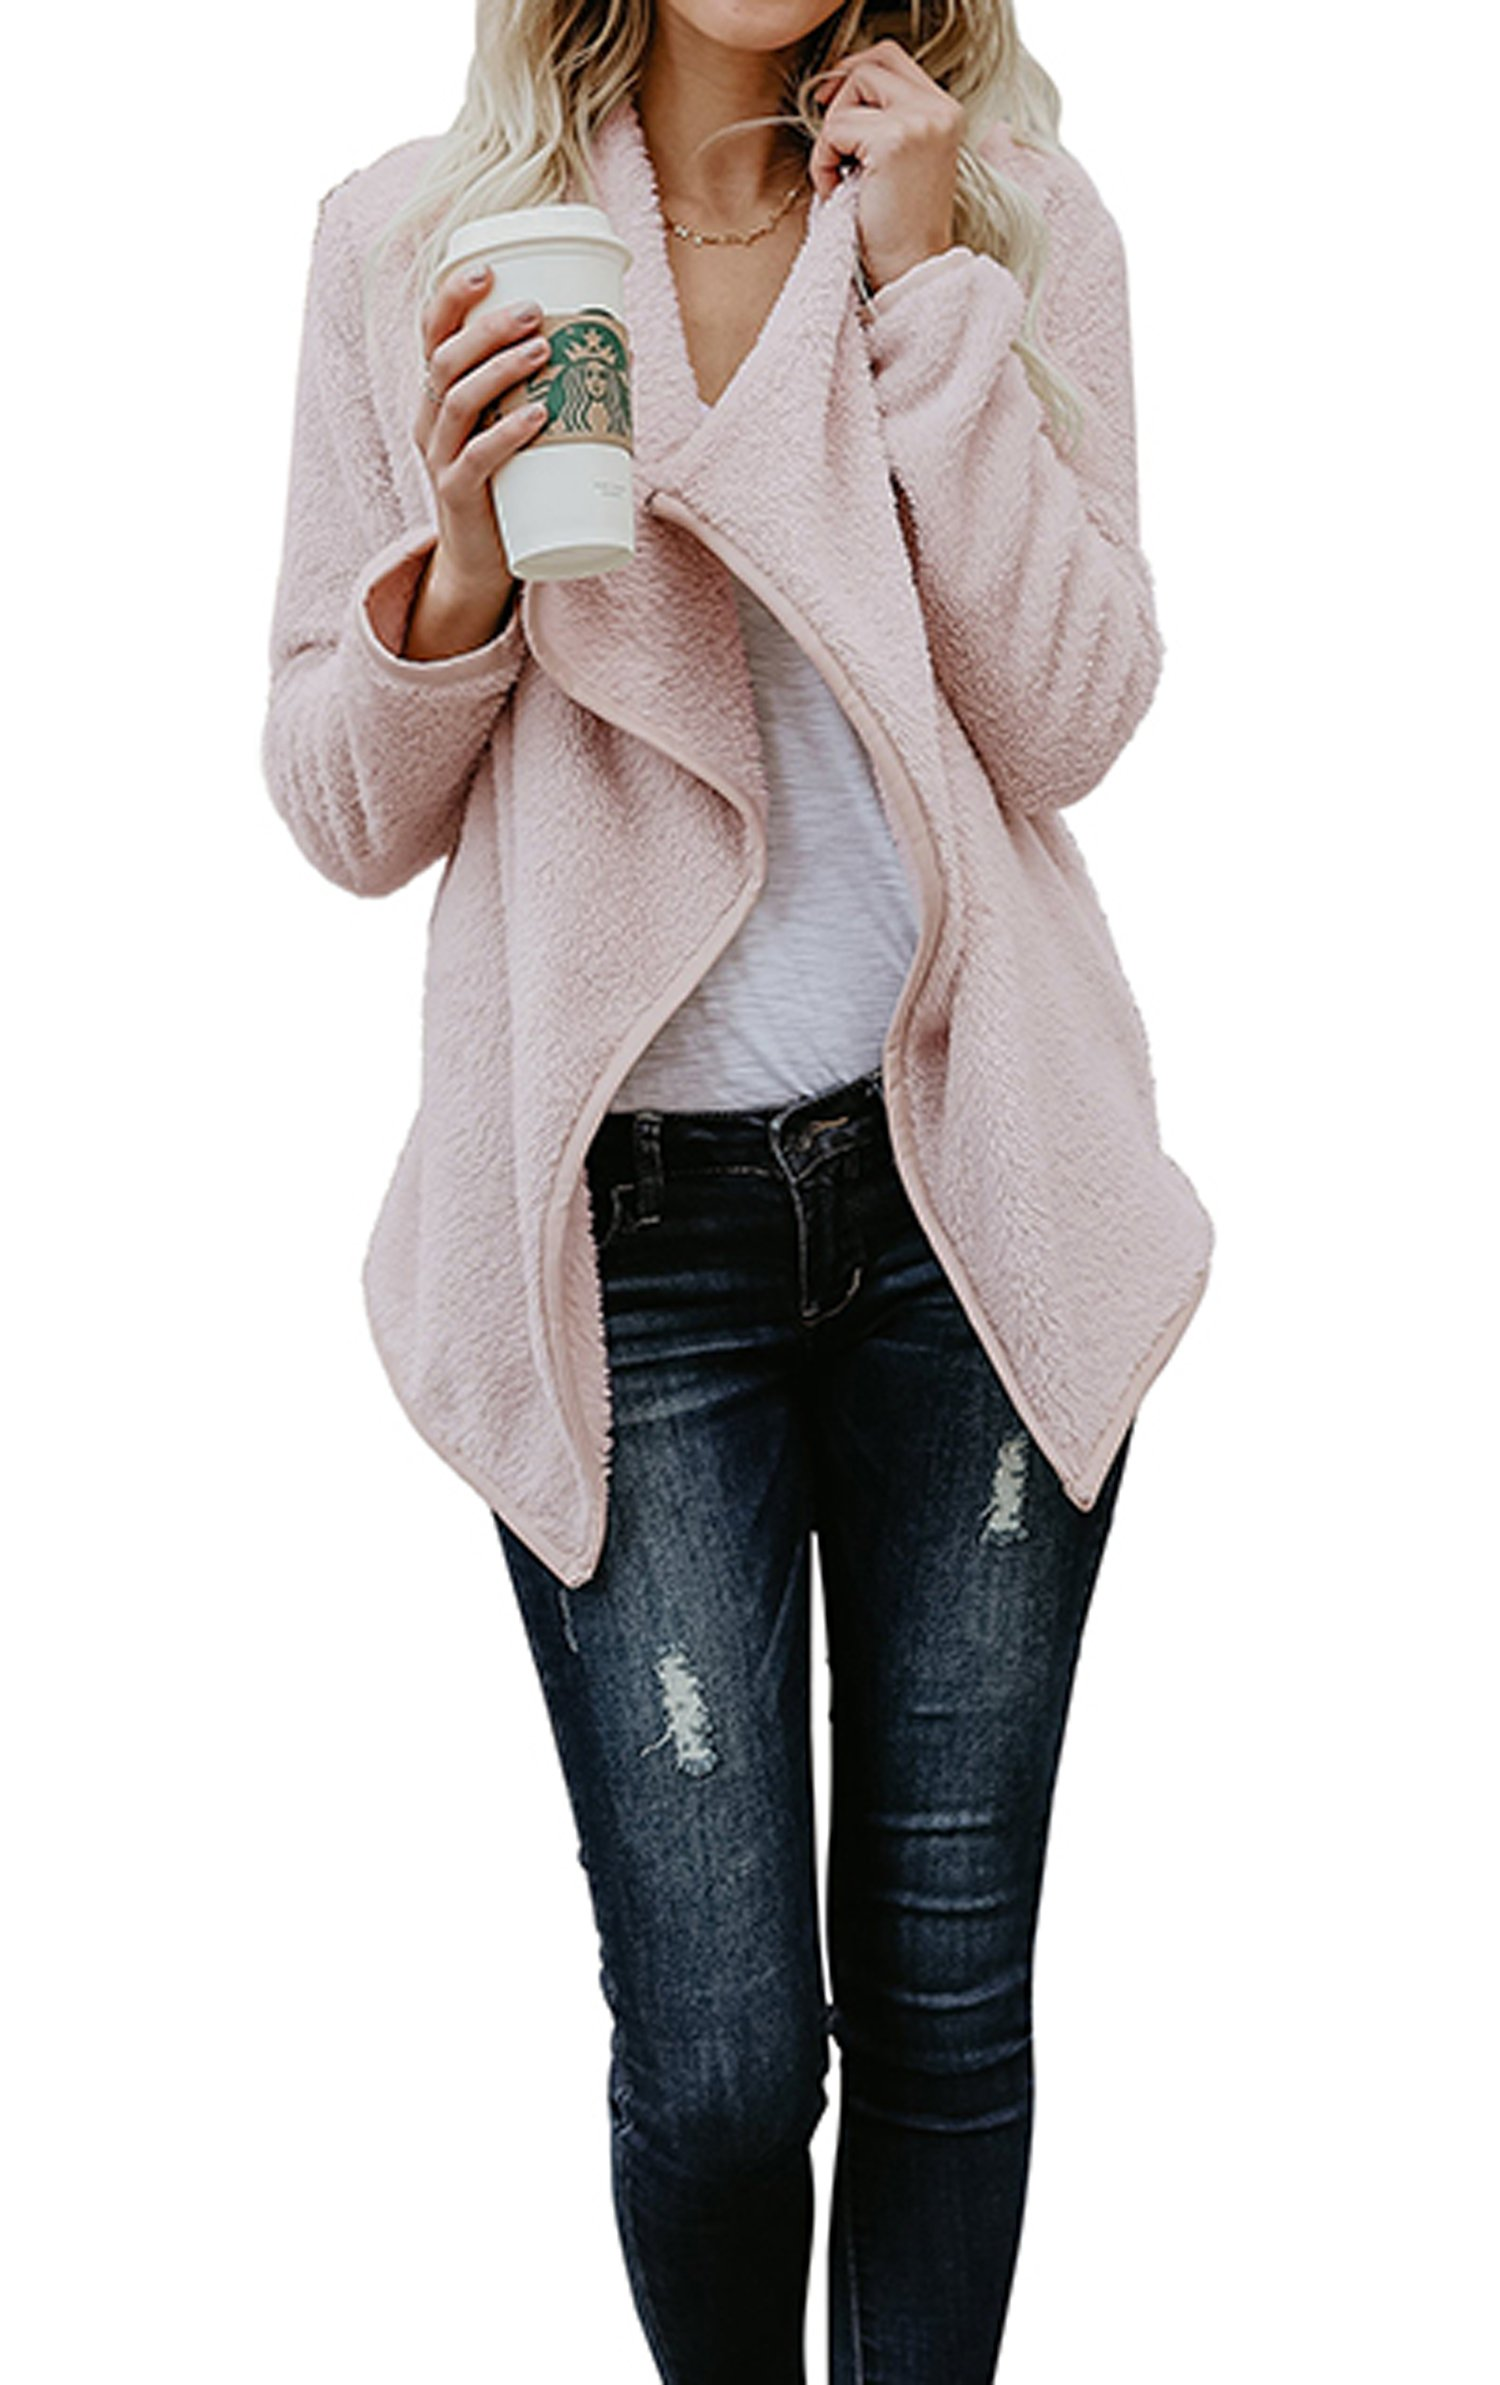 Hibluco Women's Casual Long Sleeve Faux Fur Jacket Open Front Cardigan (Pink, Medium)